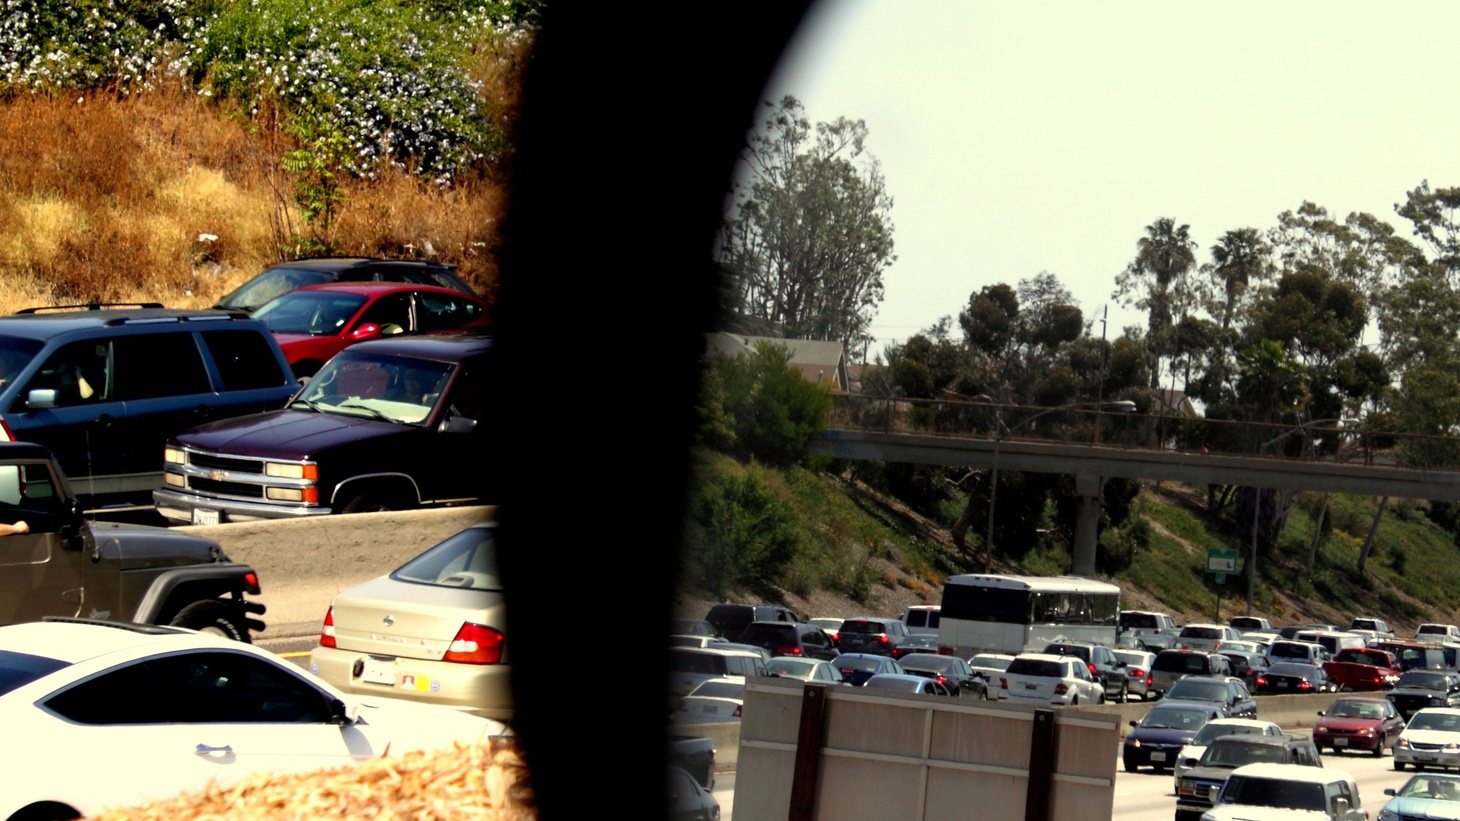 The smartphone app called Waze has been helping more and more LA commuters find alternatives to grinding along at a snail's pace on busy freeways. That sounds great unless you live in a formerly quiet neighborhood of narrow streets now crowded with passing cars.